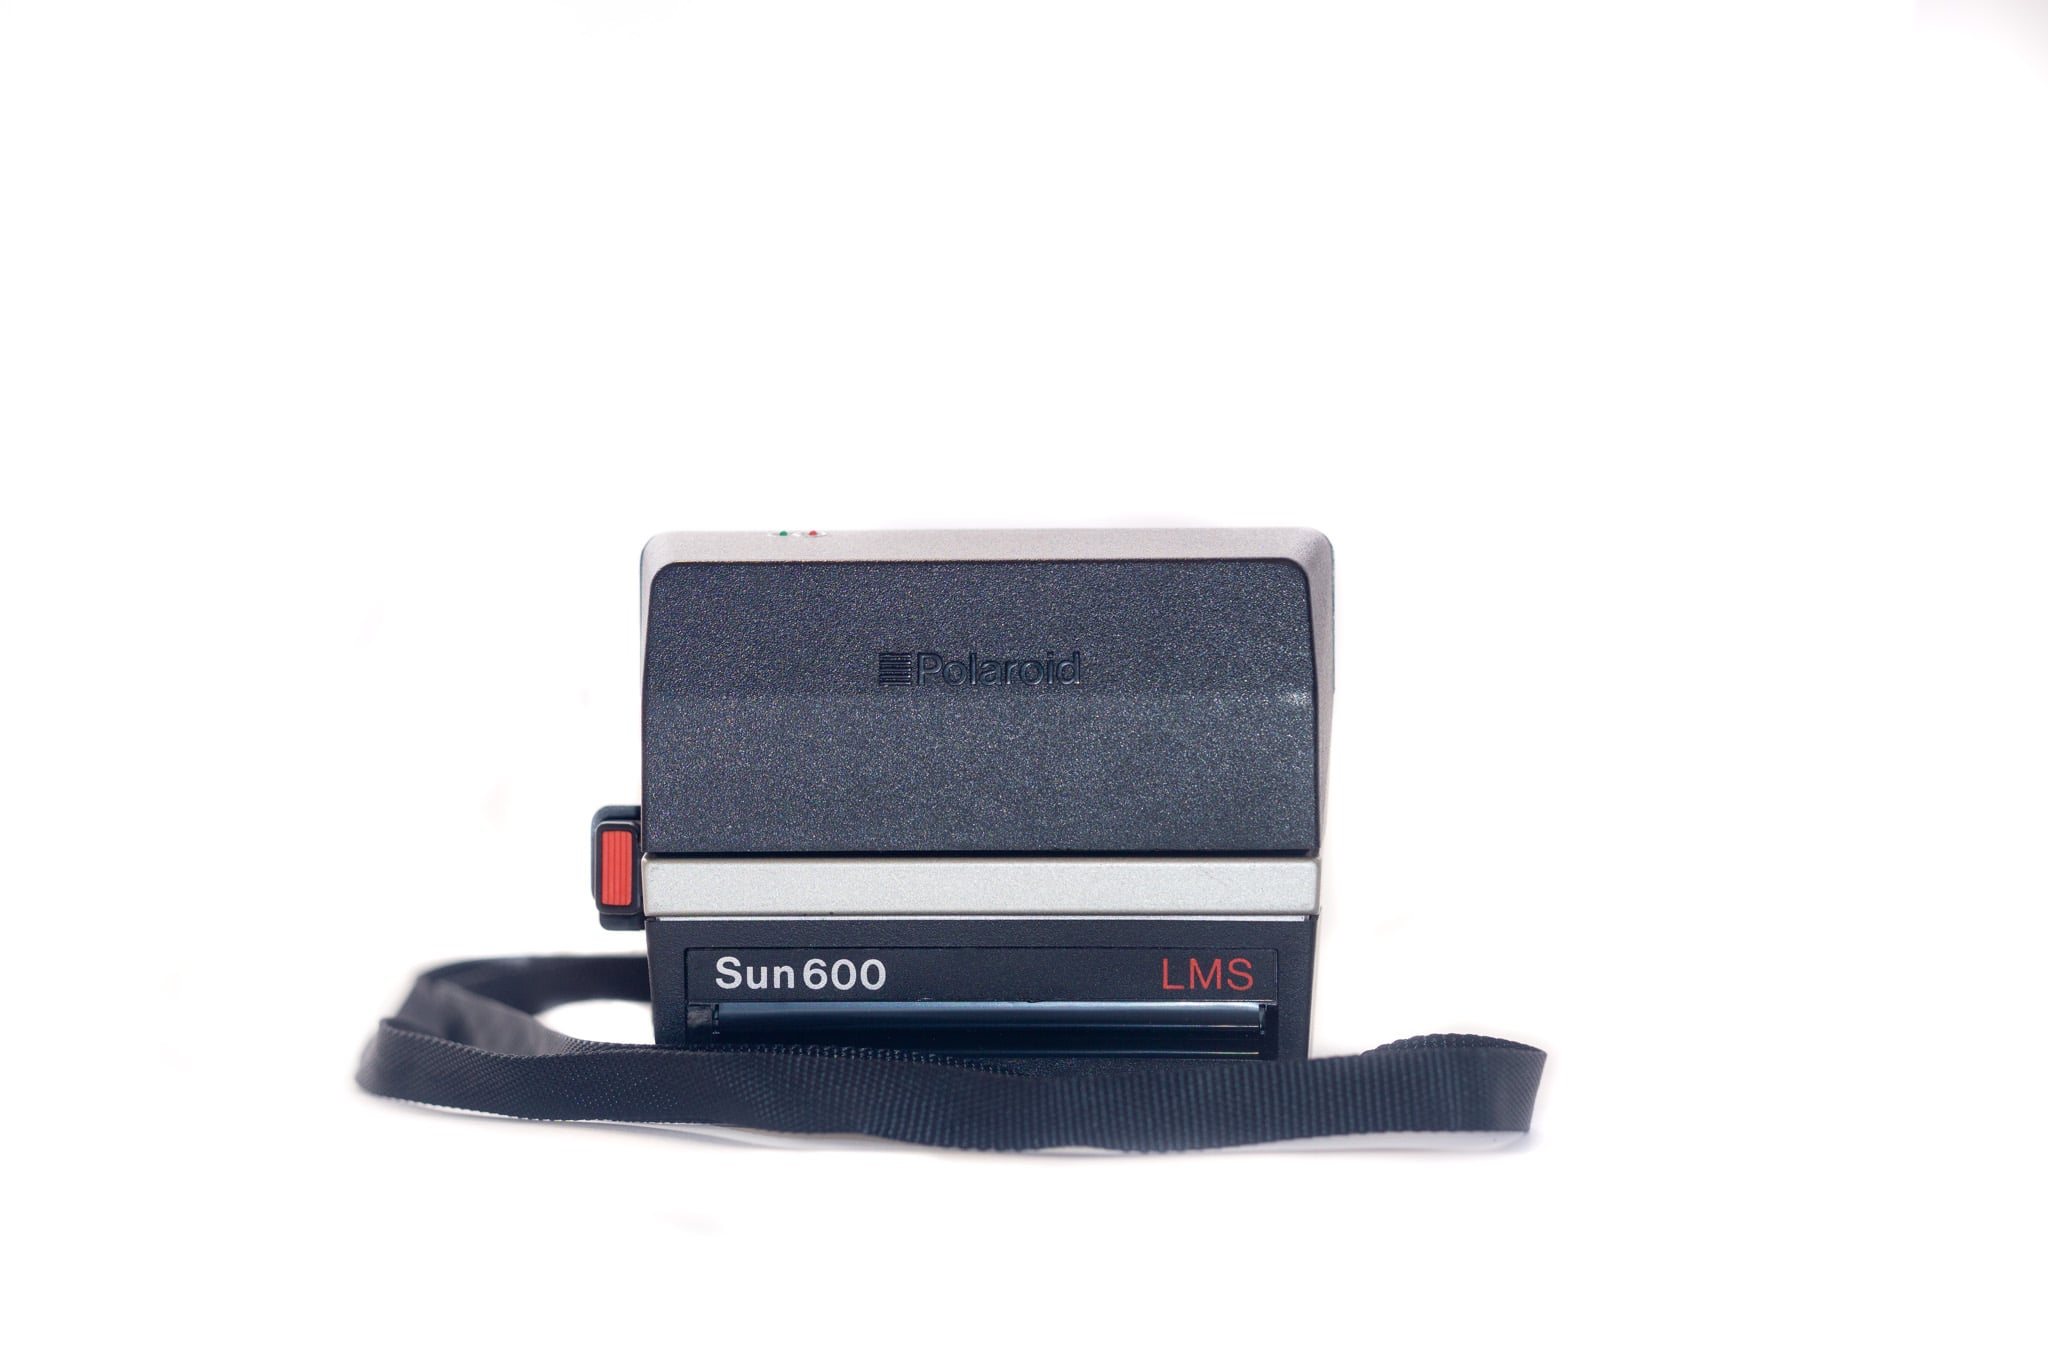 Polaroid Sun 600 LMS CLosed